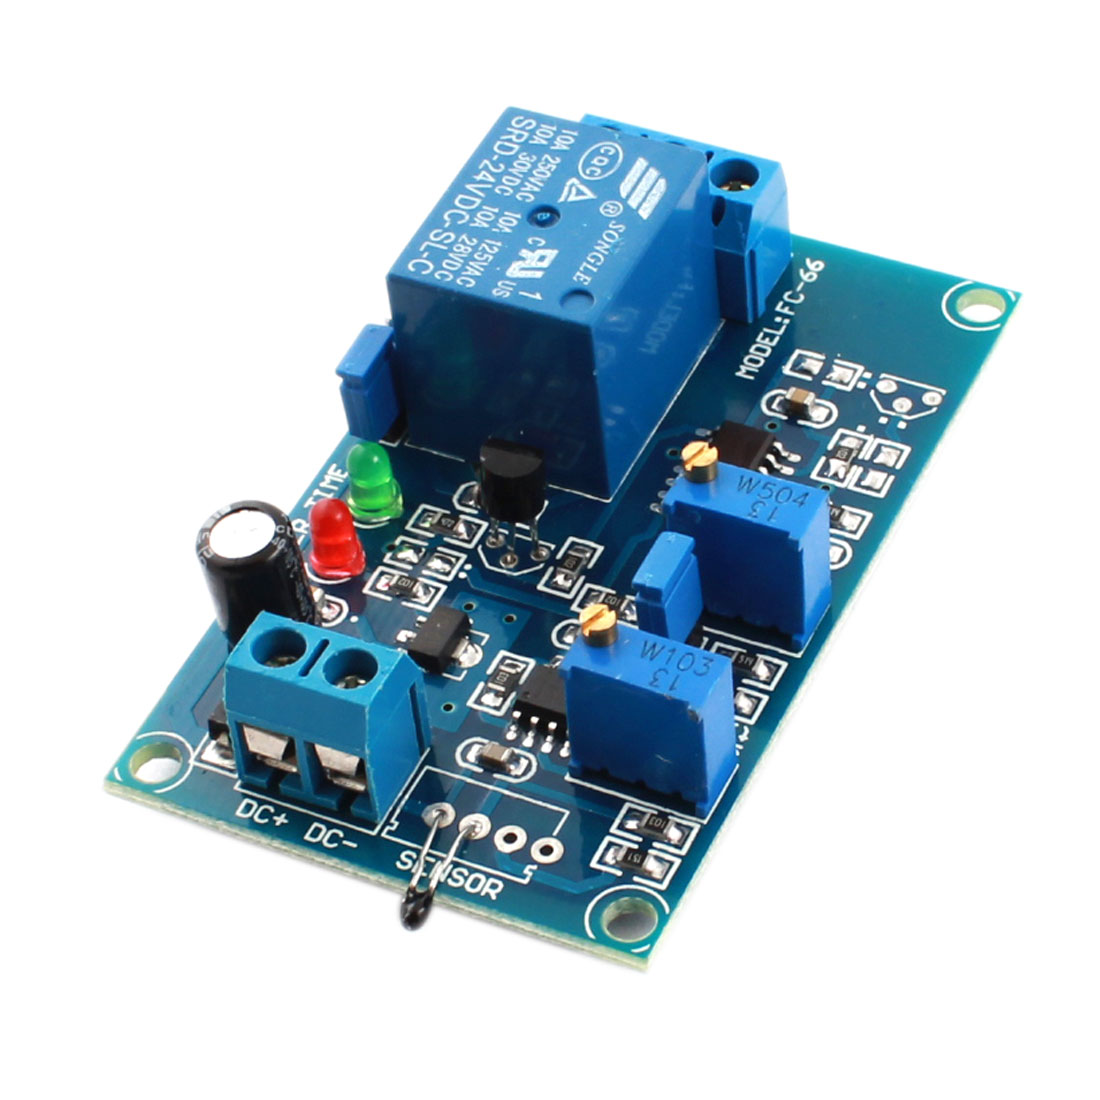 FC-66 DC 24V 0-20S 1 Channel High Temperature Trigger Thermal Sensor Time Delay PCB Circuit Relay Module Green